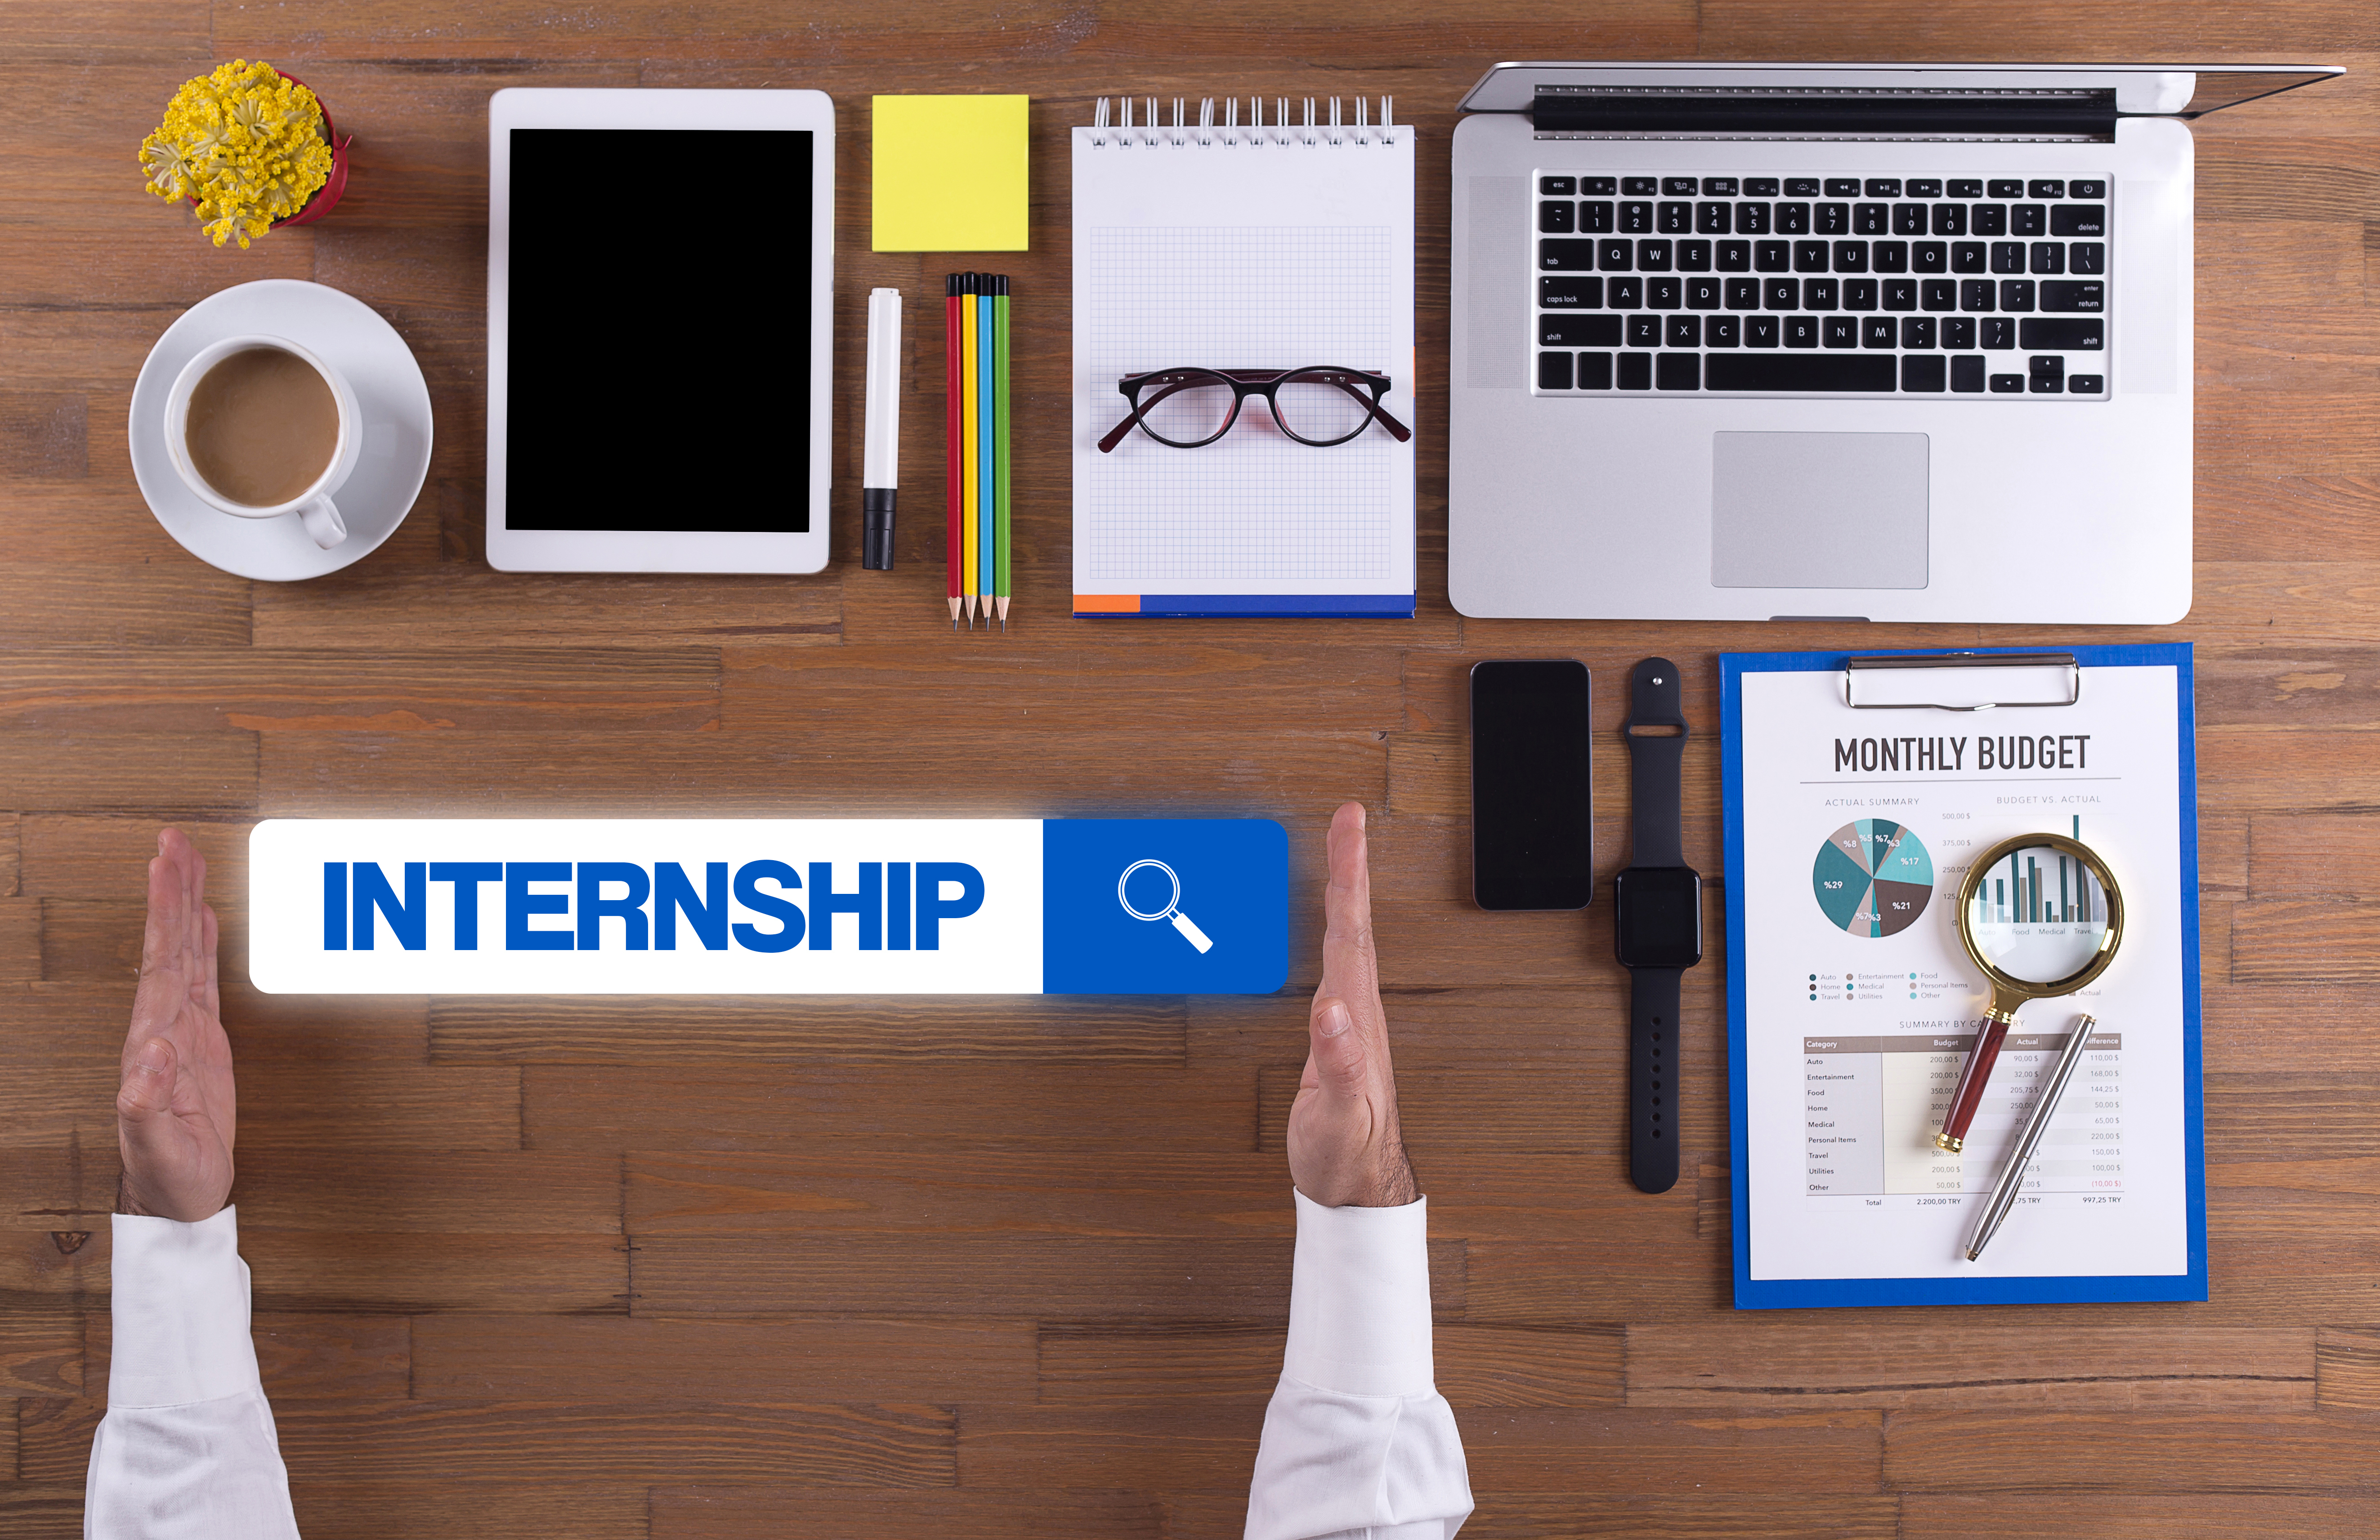 internship report of a graphic design firm As of aug 2018, the average pay for a graphic design intern is $1166 /hr or  $30017  most graphic design interns report high levels of job satisfaction  as  industries from art to business employ graphic designers and interns  or  reduced-wage capacity with advancement opportunities at the internship's  conclusion.